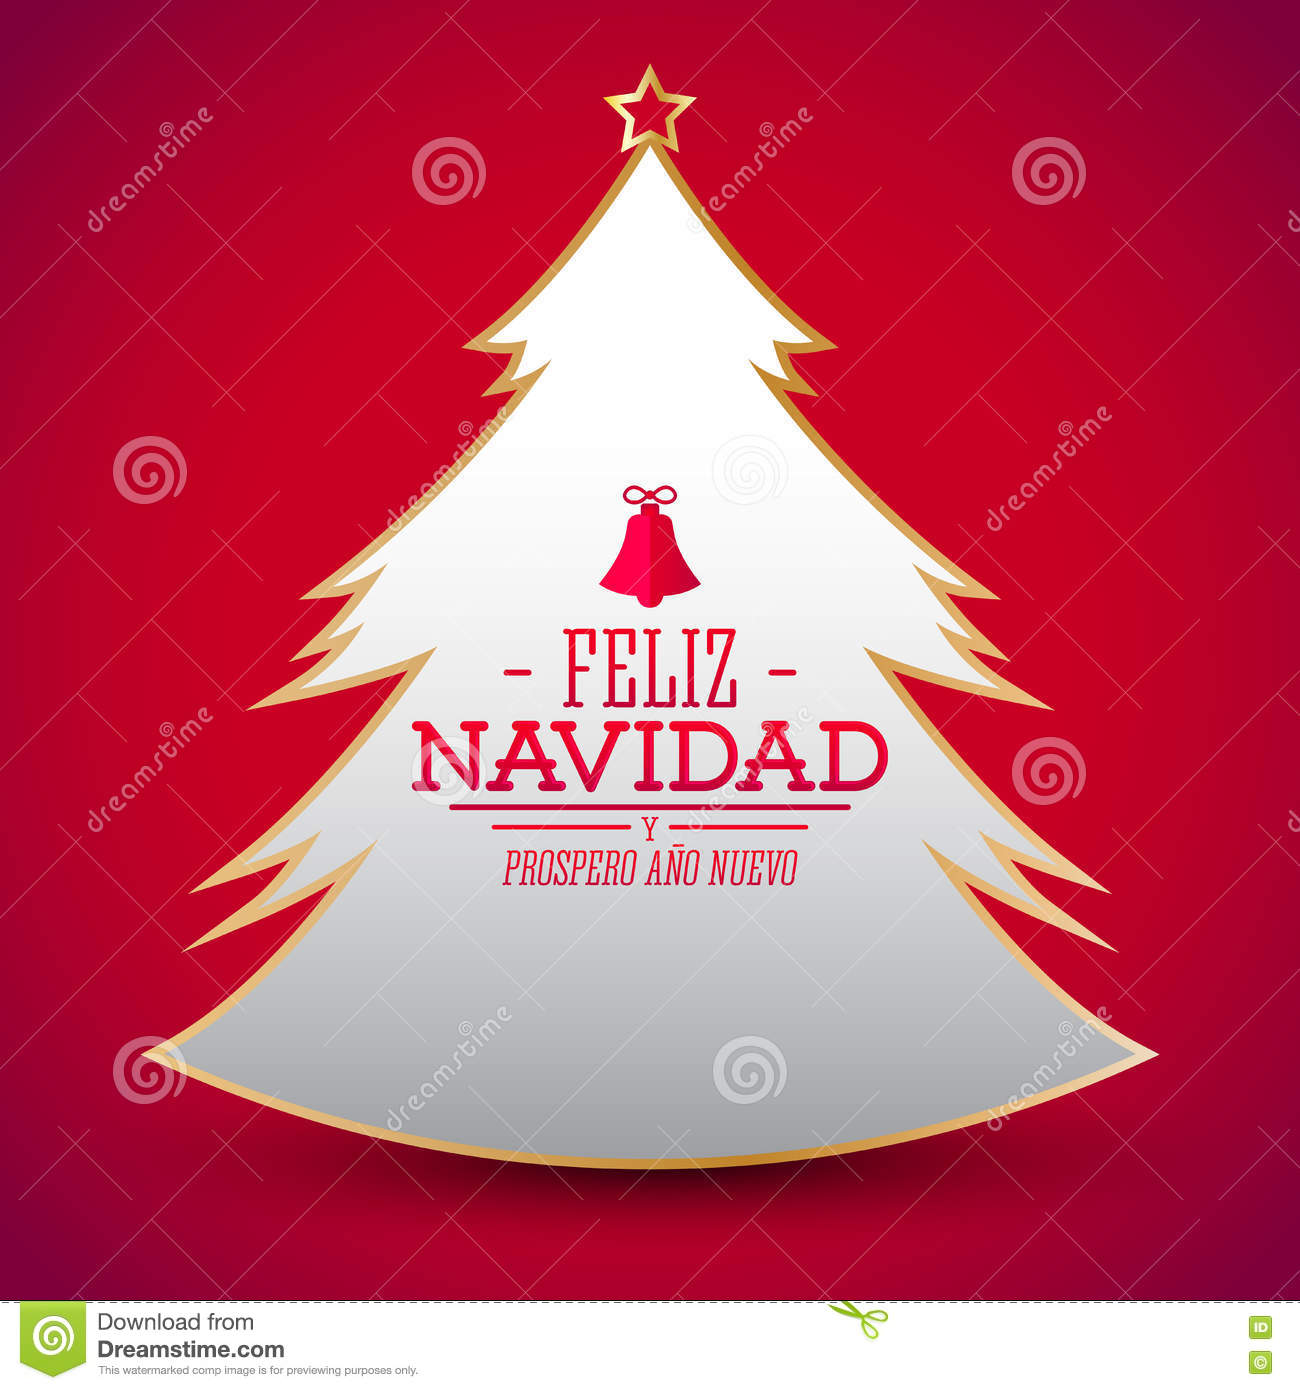 feliz navidad y prospero ano nuevo spanish translation merry christmas and happy new year simple glossy christmas tree vector eps available